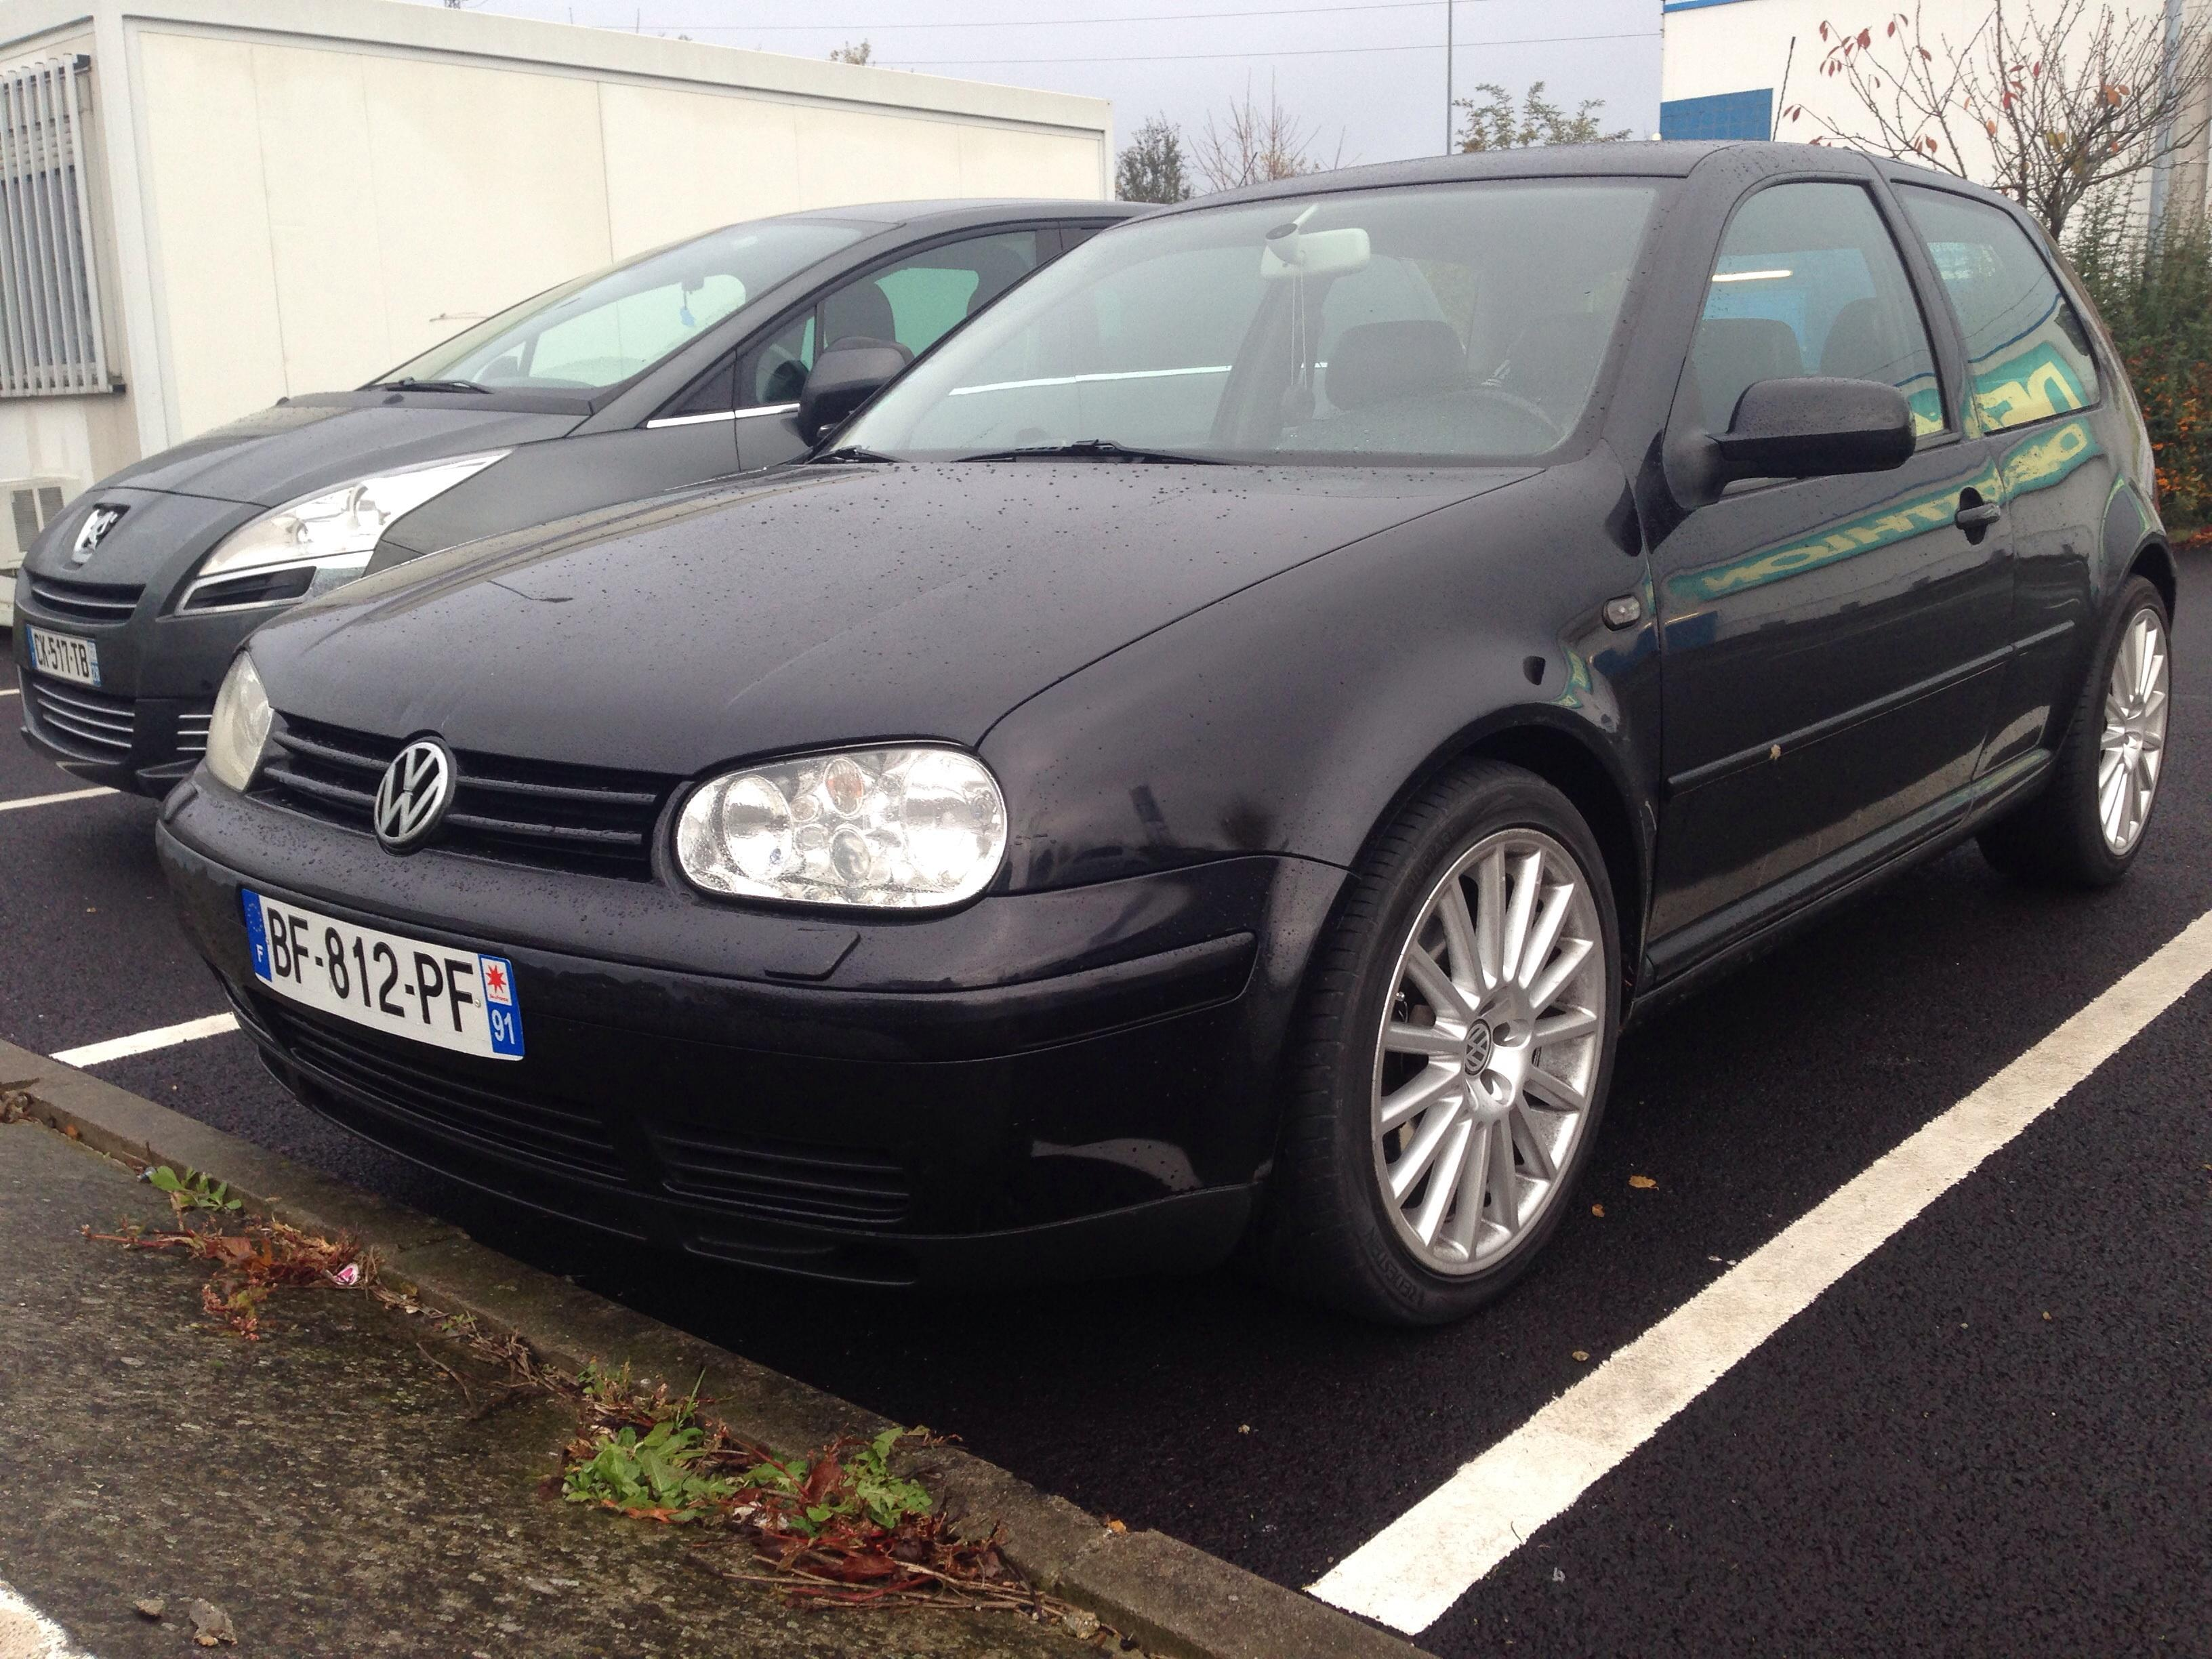 vw golf iv tdi 130 highline 2002 garage des golf iv tdi 130 forum volkswagen golf iv. Black Bedroom Furniture Sets. Home Design Ideas